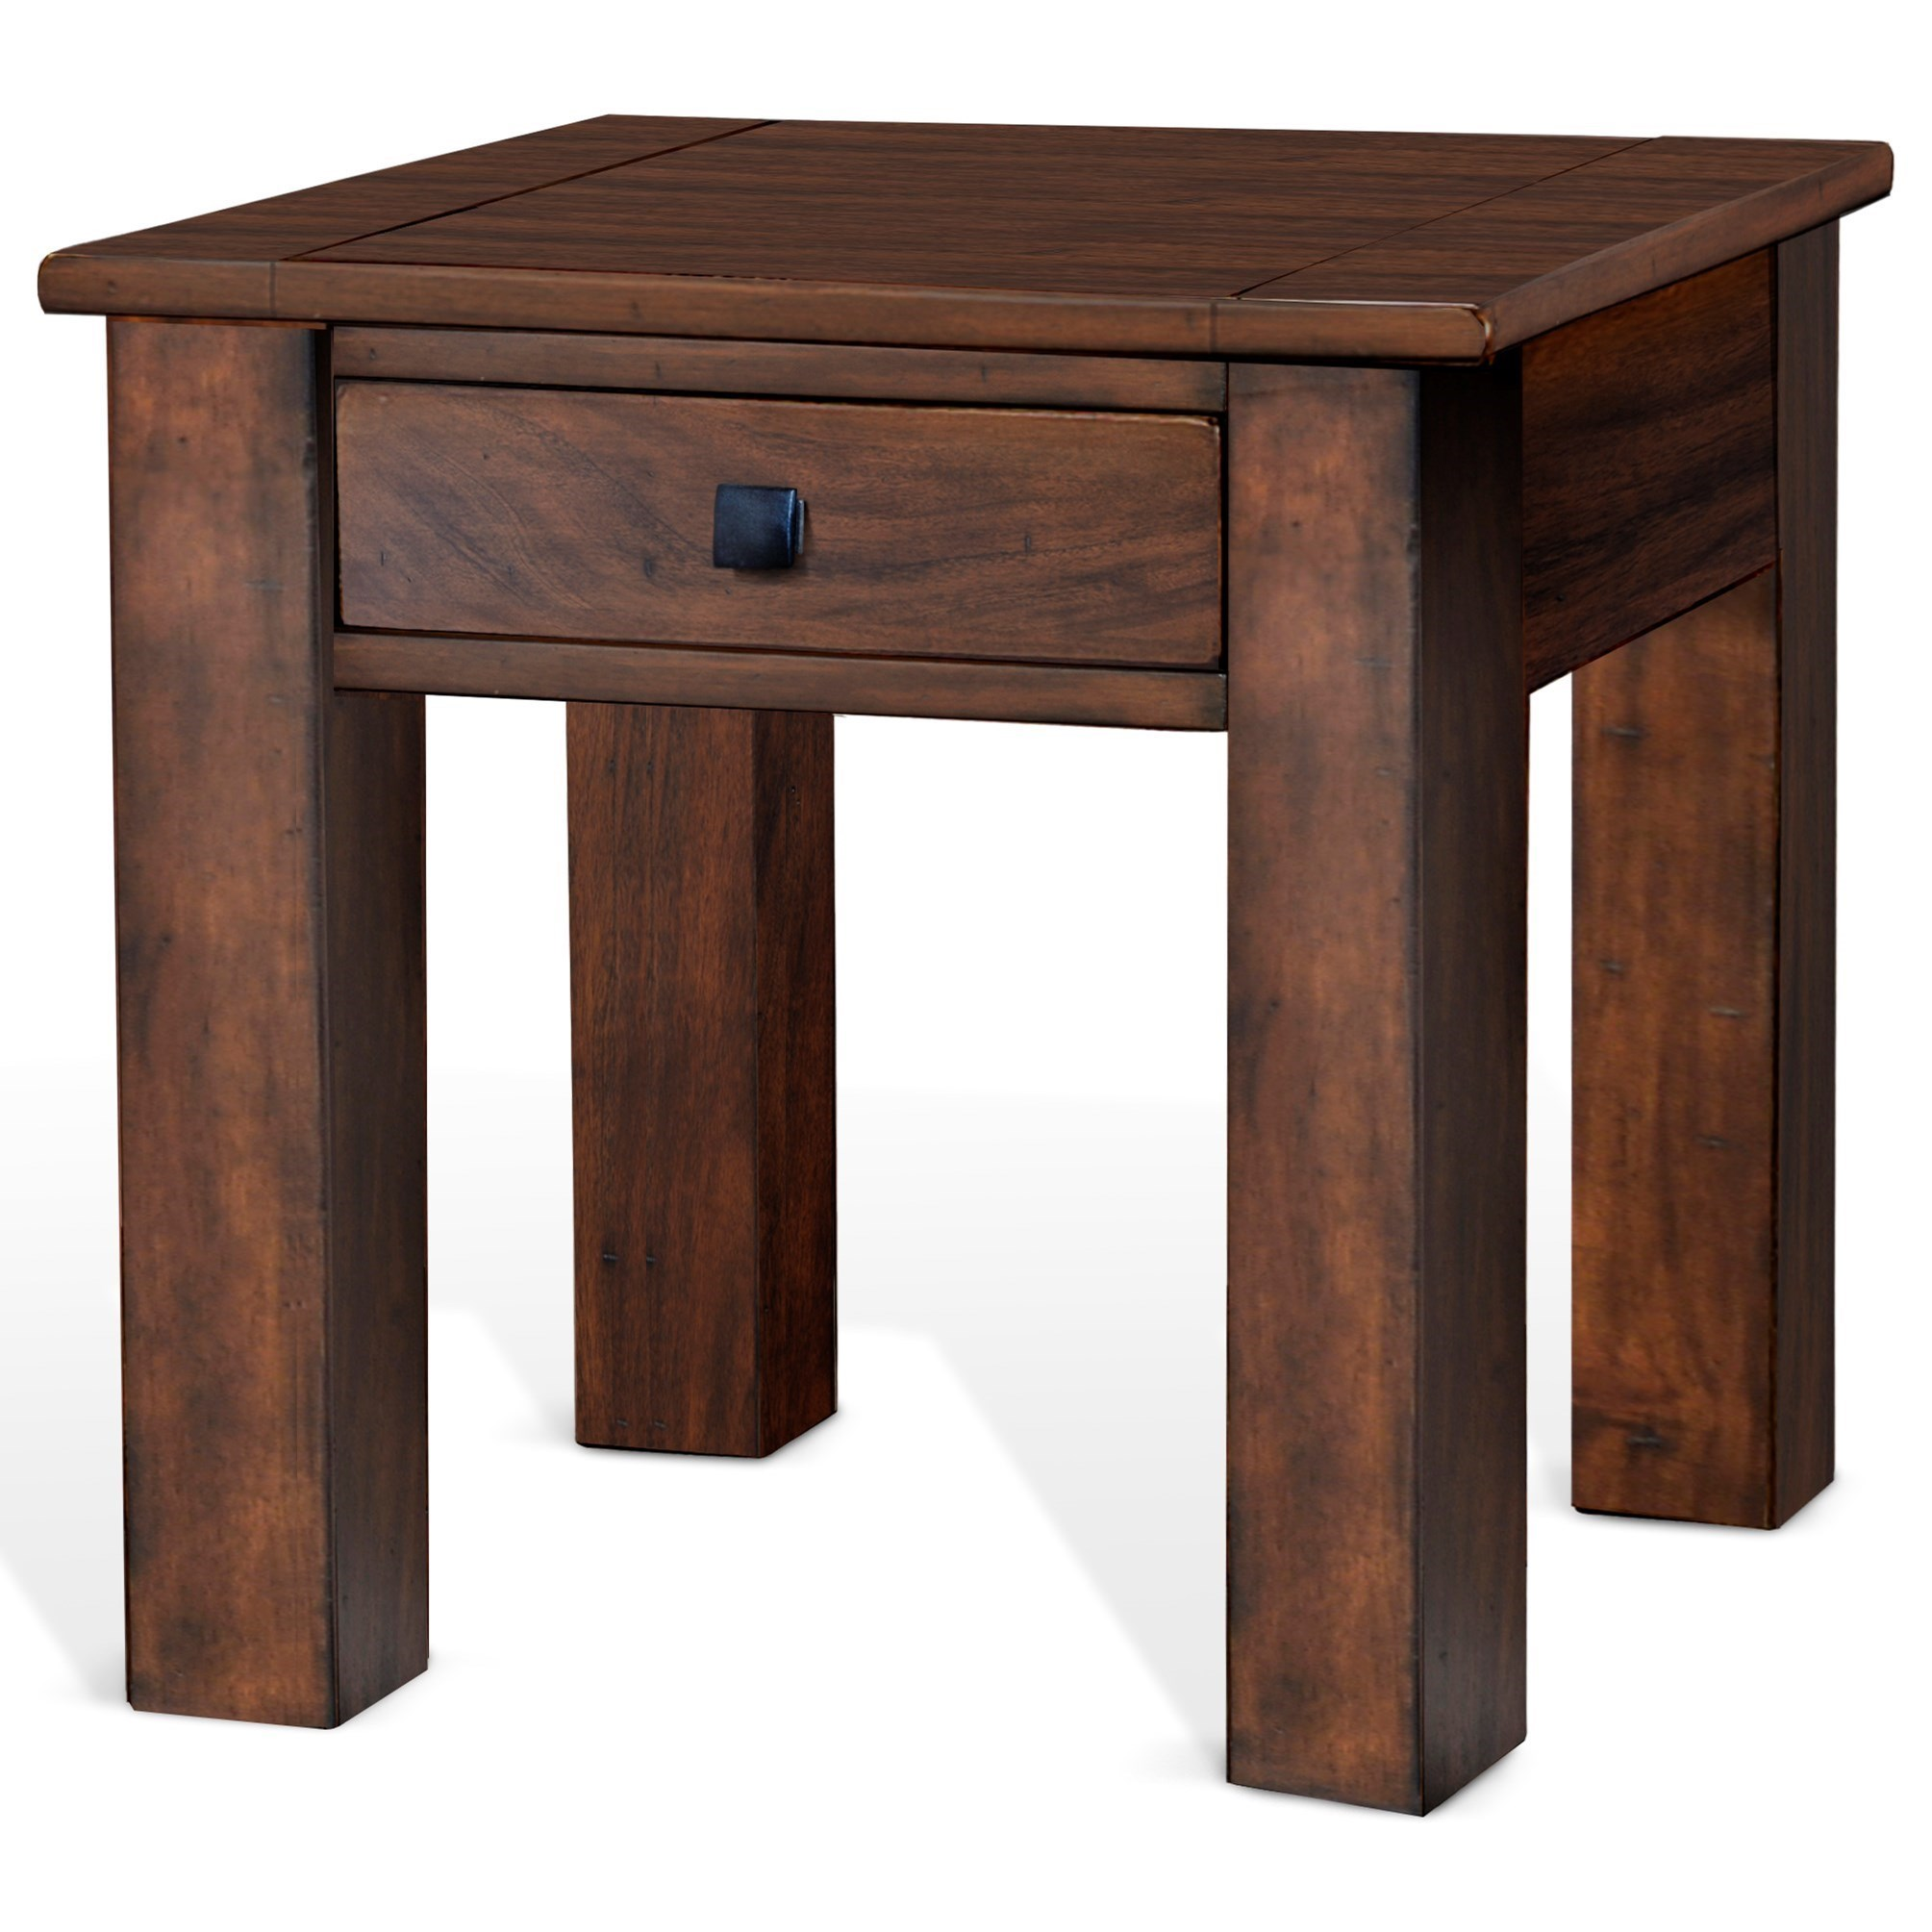 Coffee And End Tables With Storage Sunny Designs Nativ Living Rustic End Table With Storage Drawer